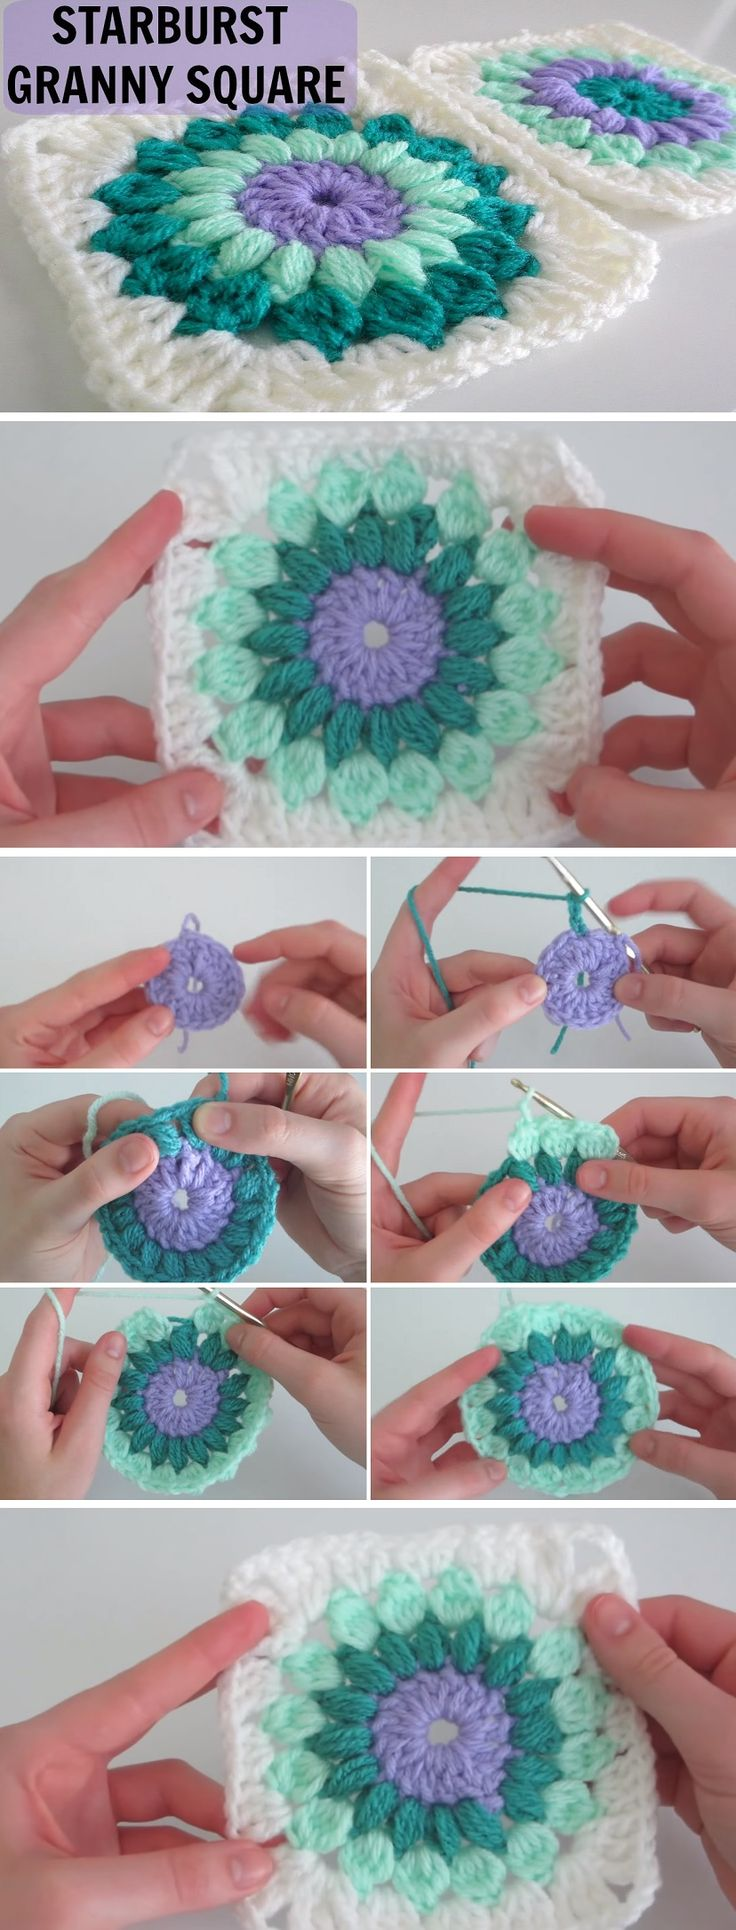 Learn to Crochet a Starburst Granny Square – Linda Dyson